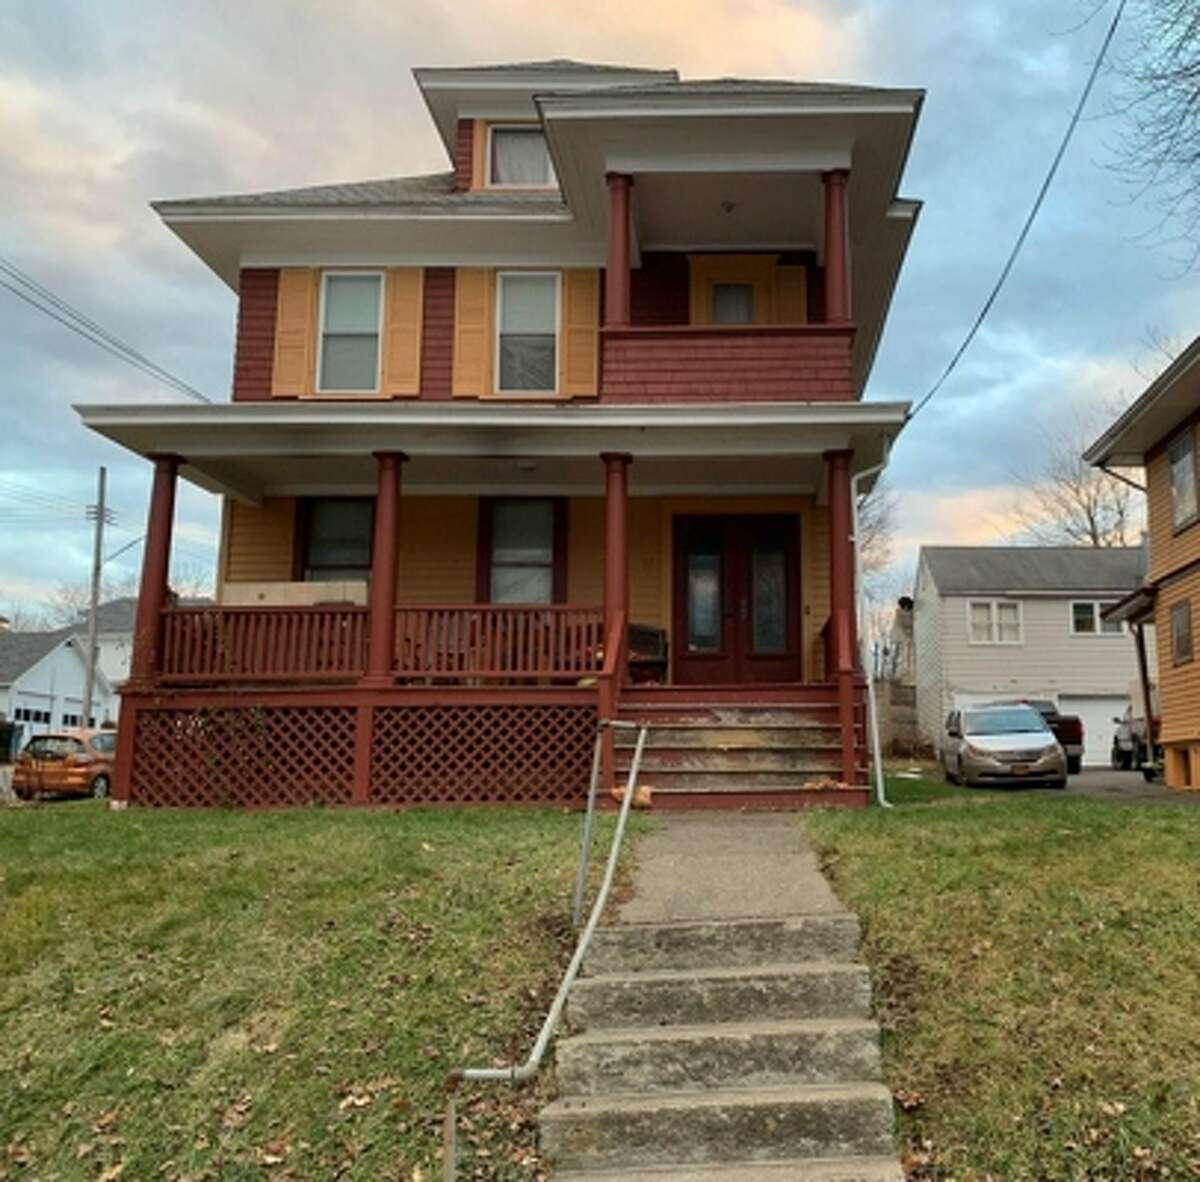 $375,000. 32 Fairview Ave, Hudson NY 12534. View listing.